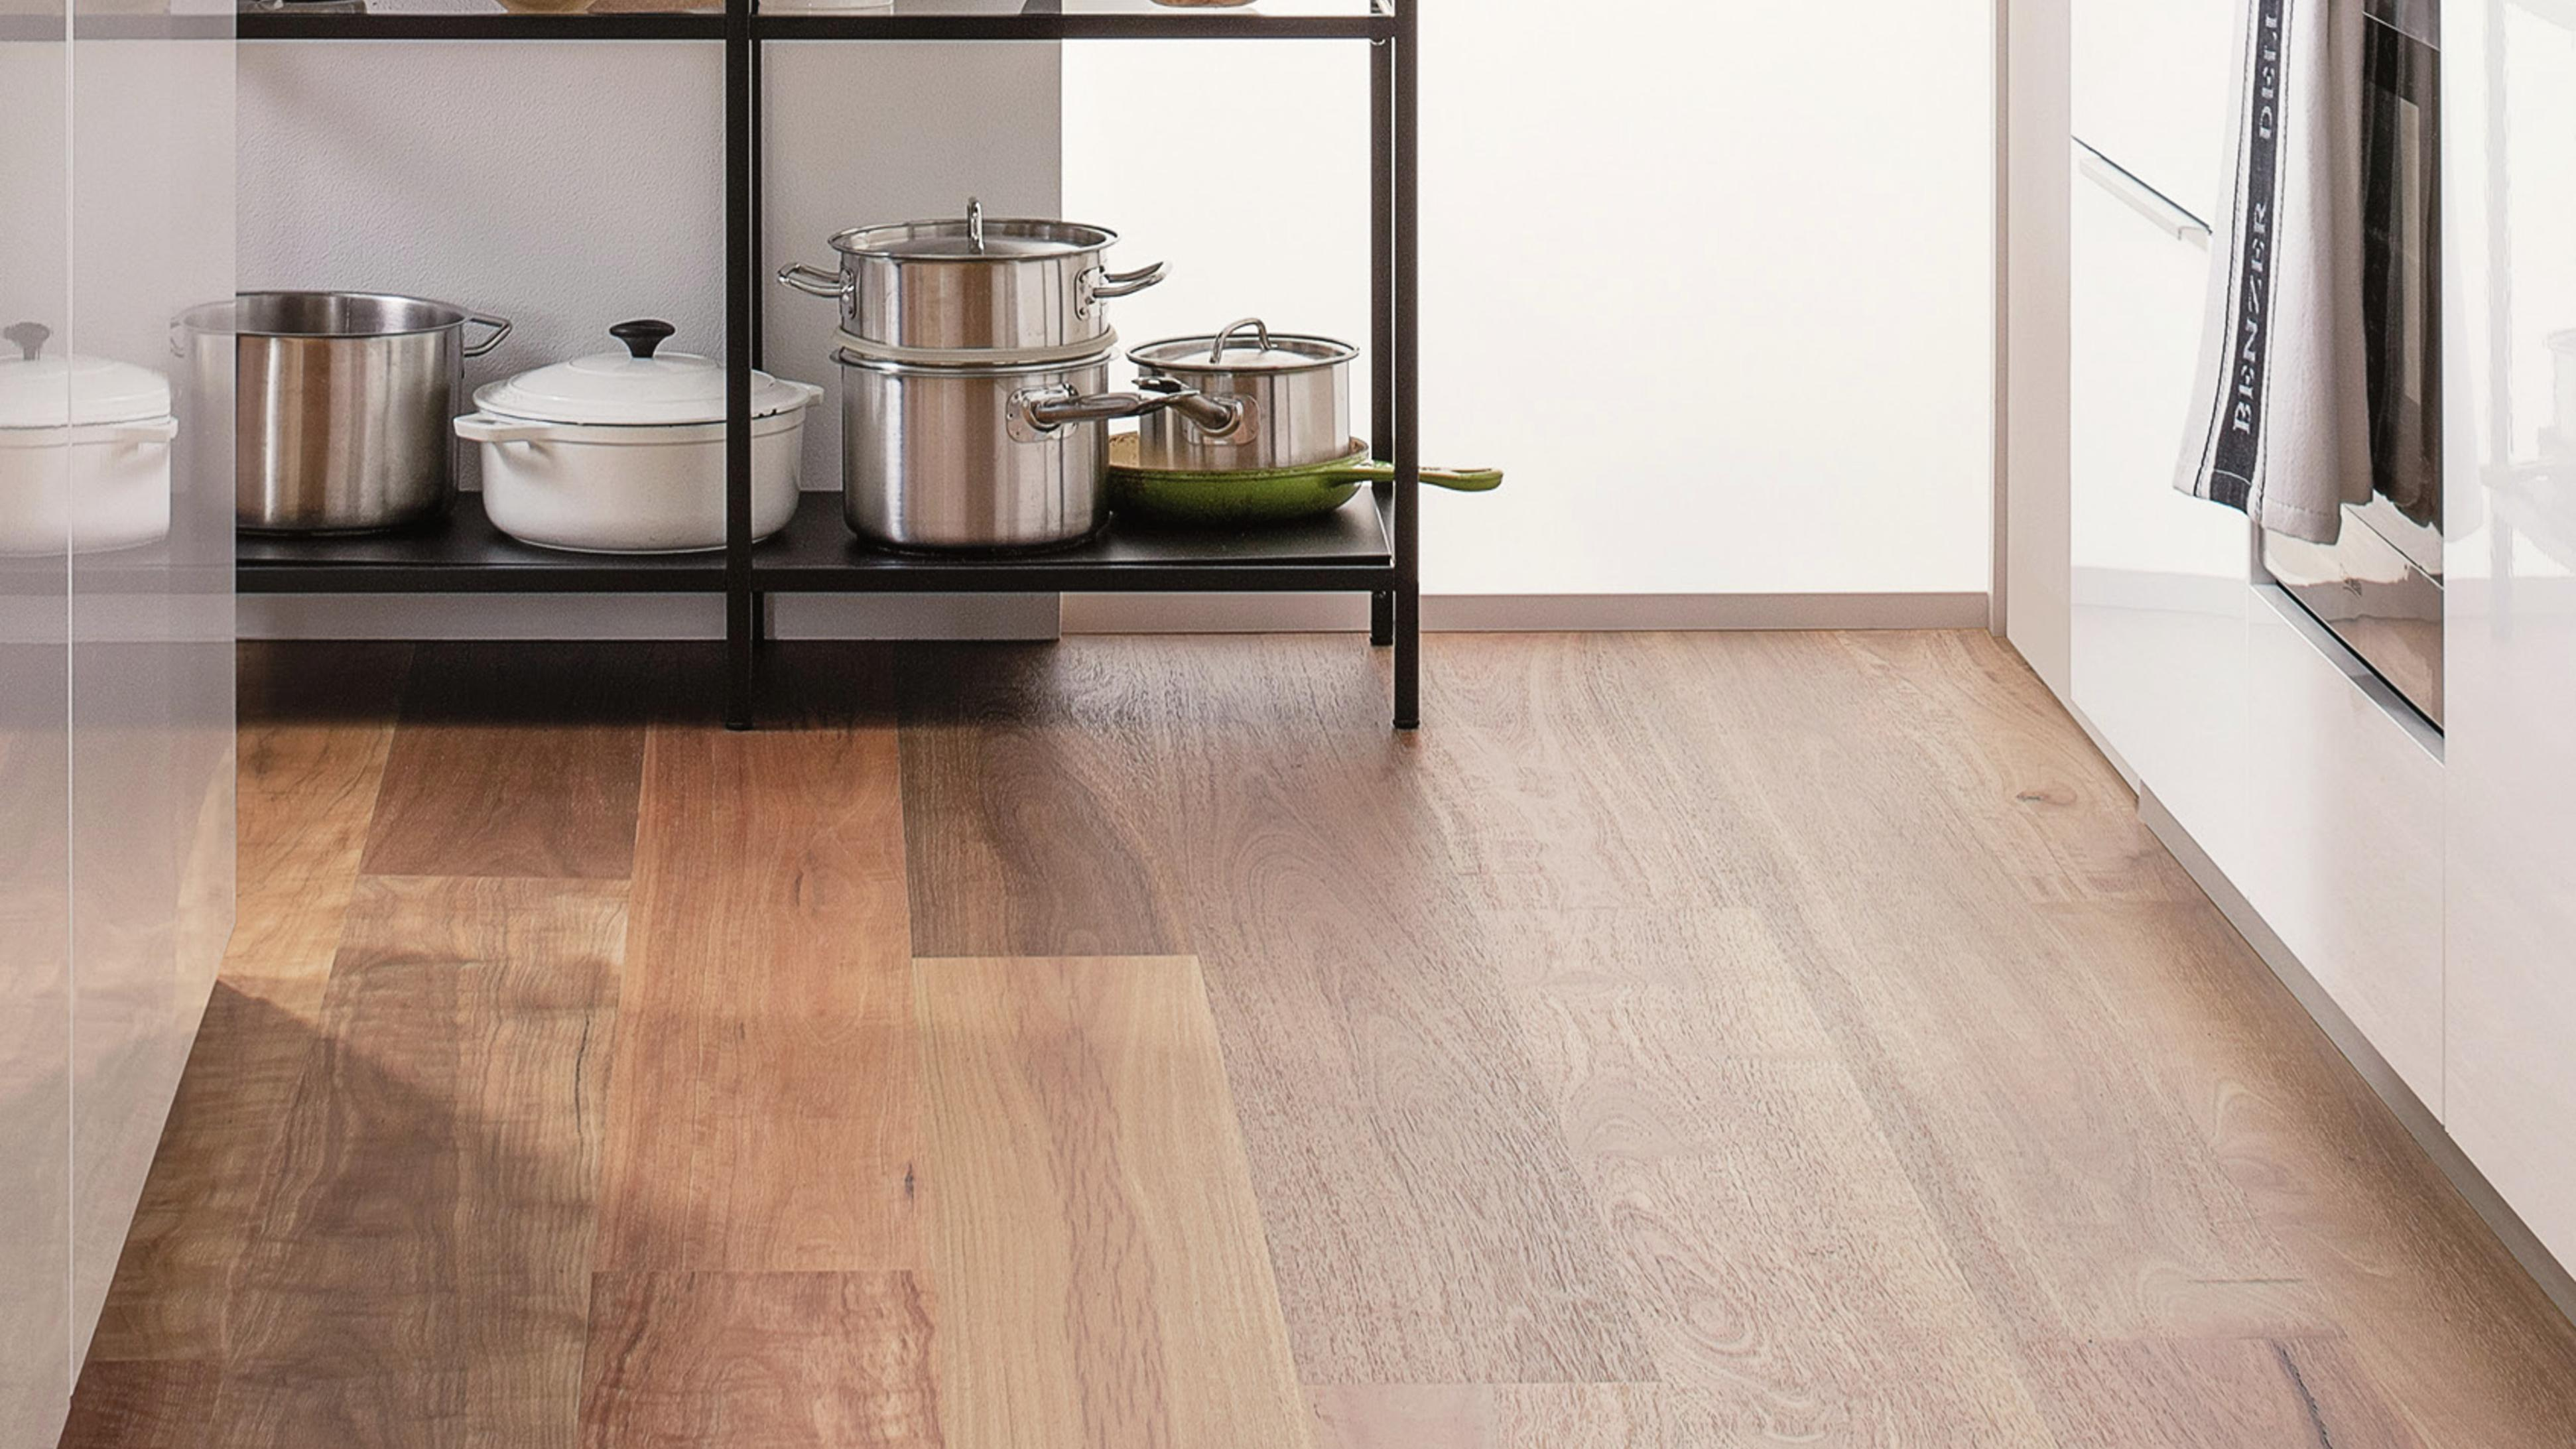 Engineered timber flooring in a kitchen